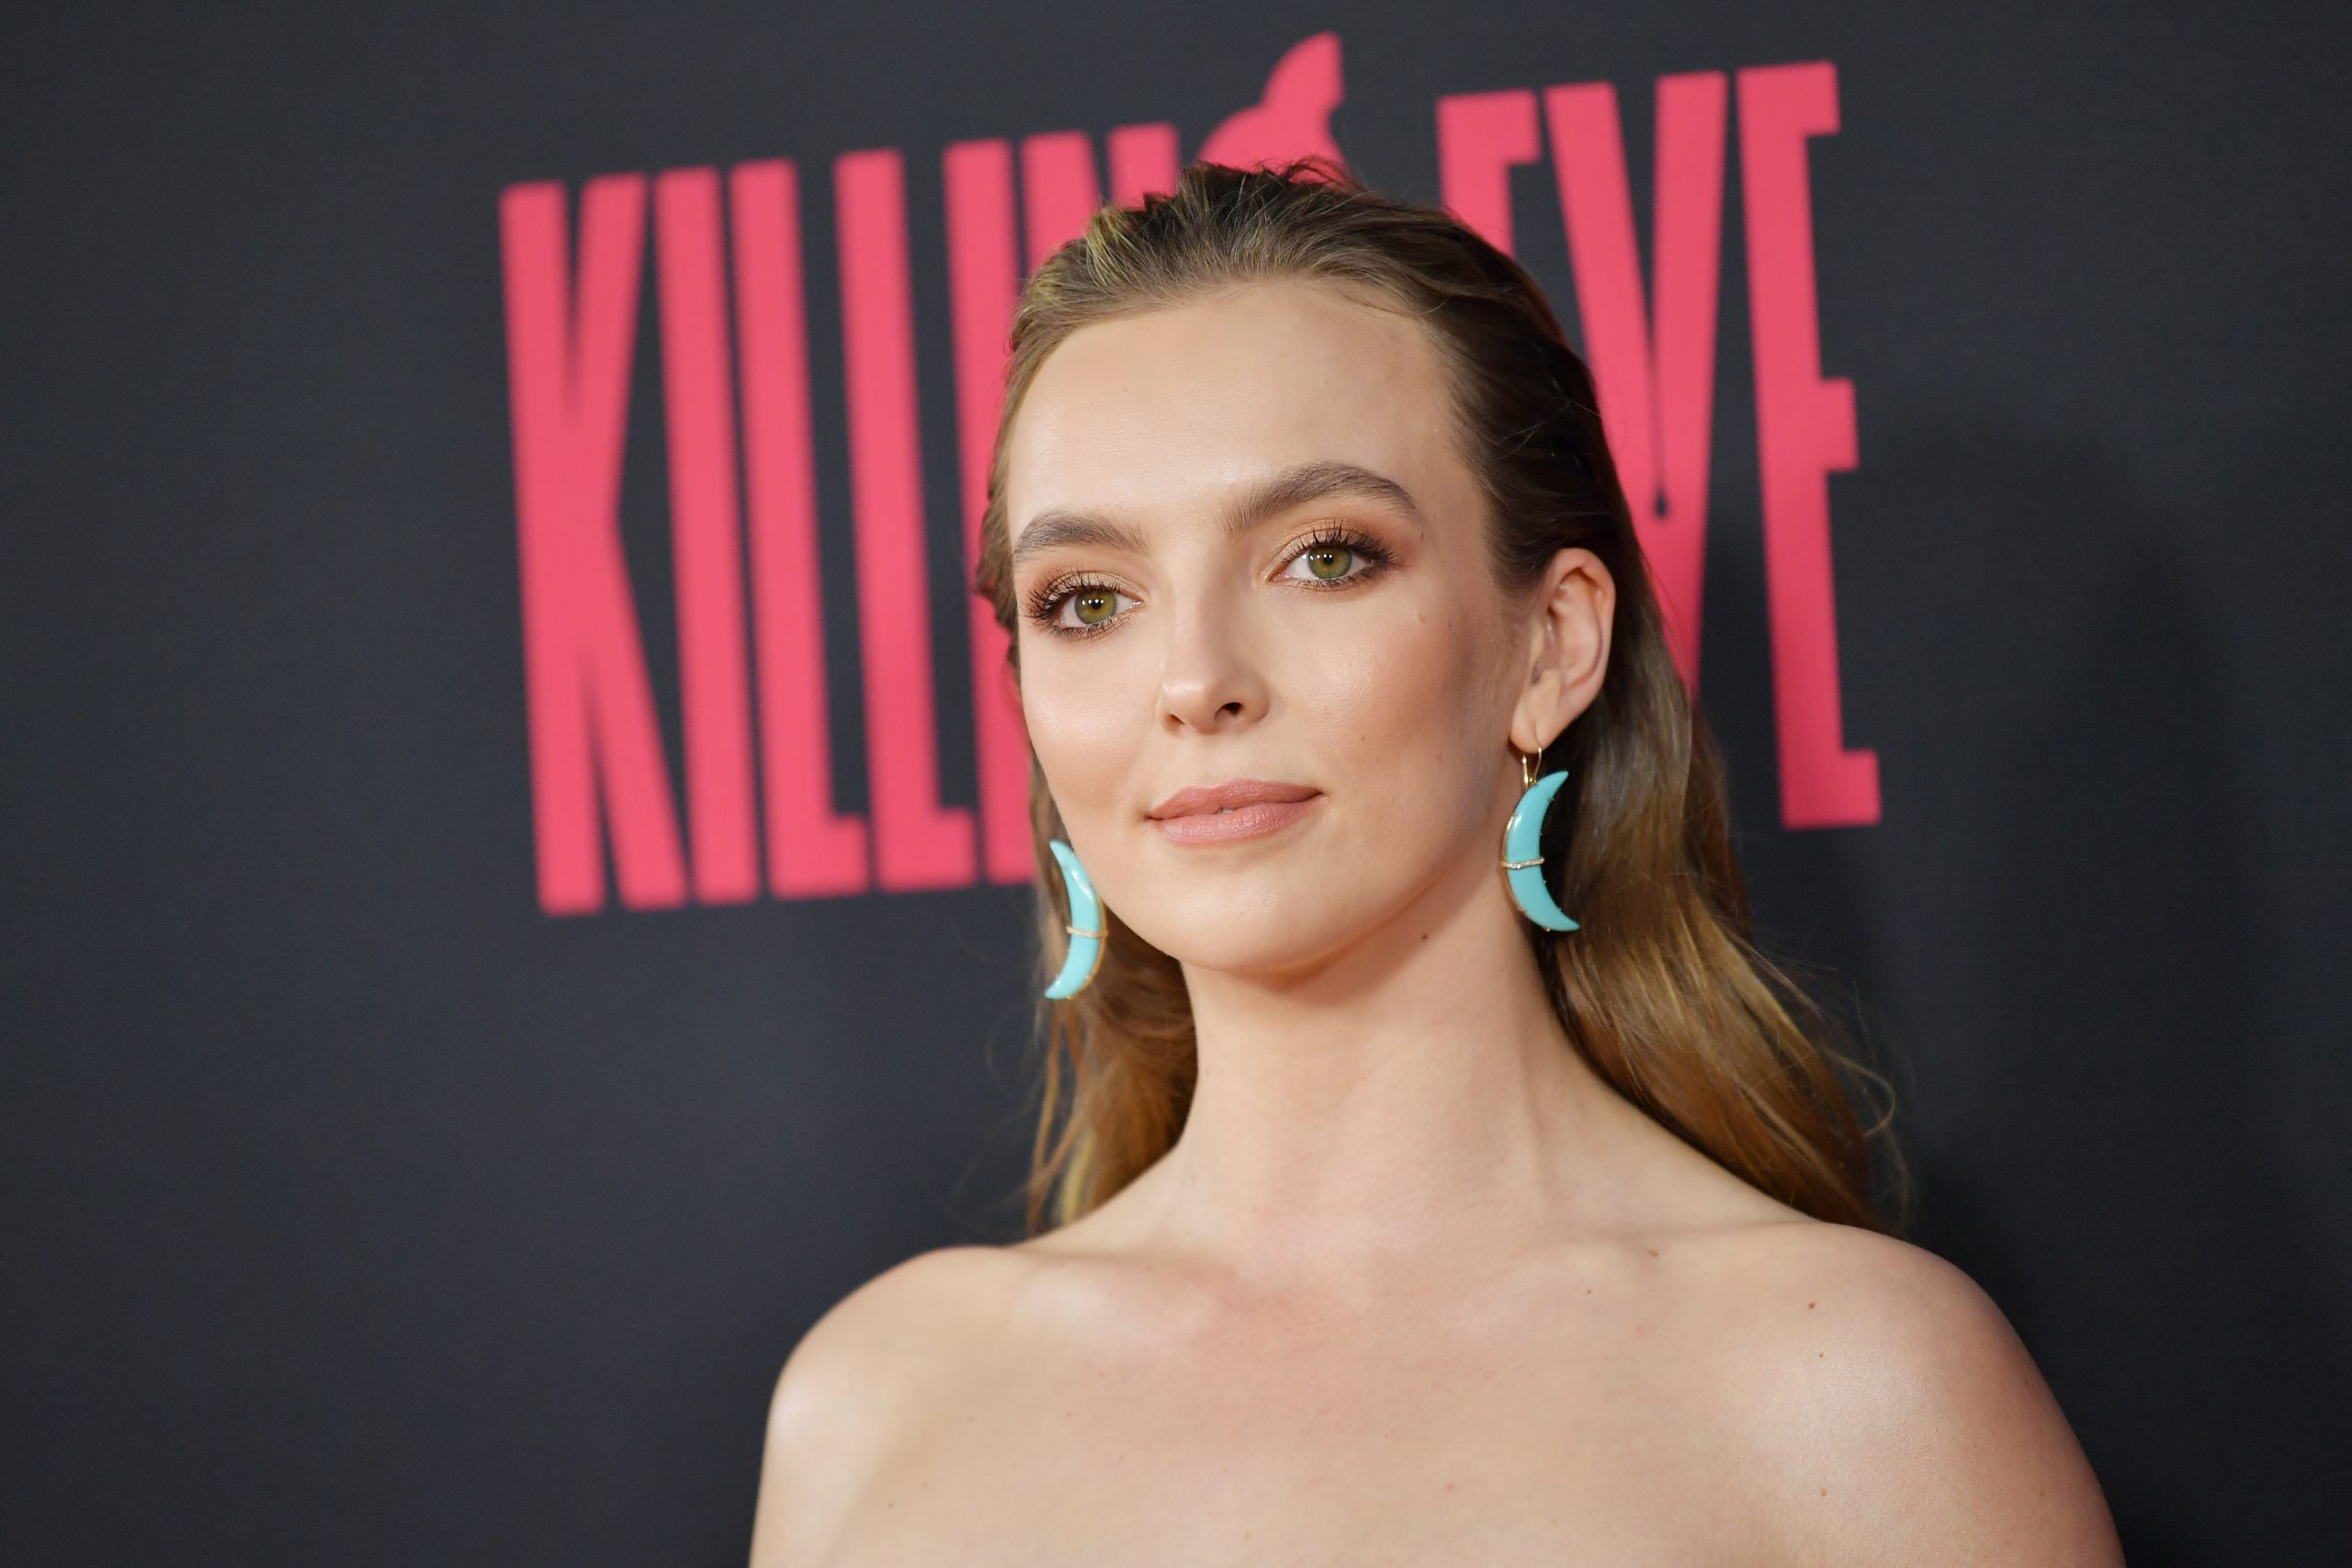 Aidez l'actrice Jodie Comer